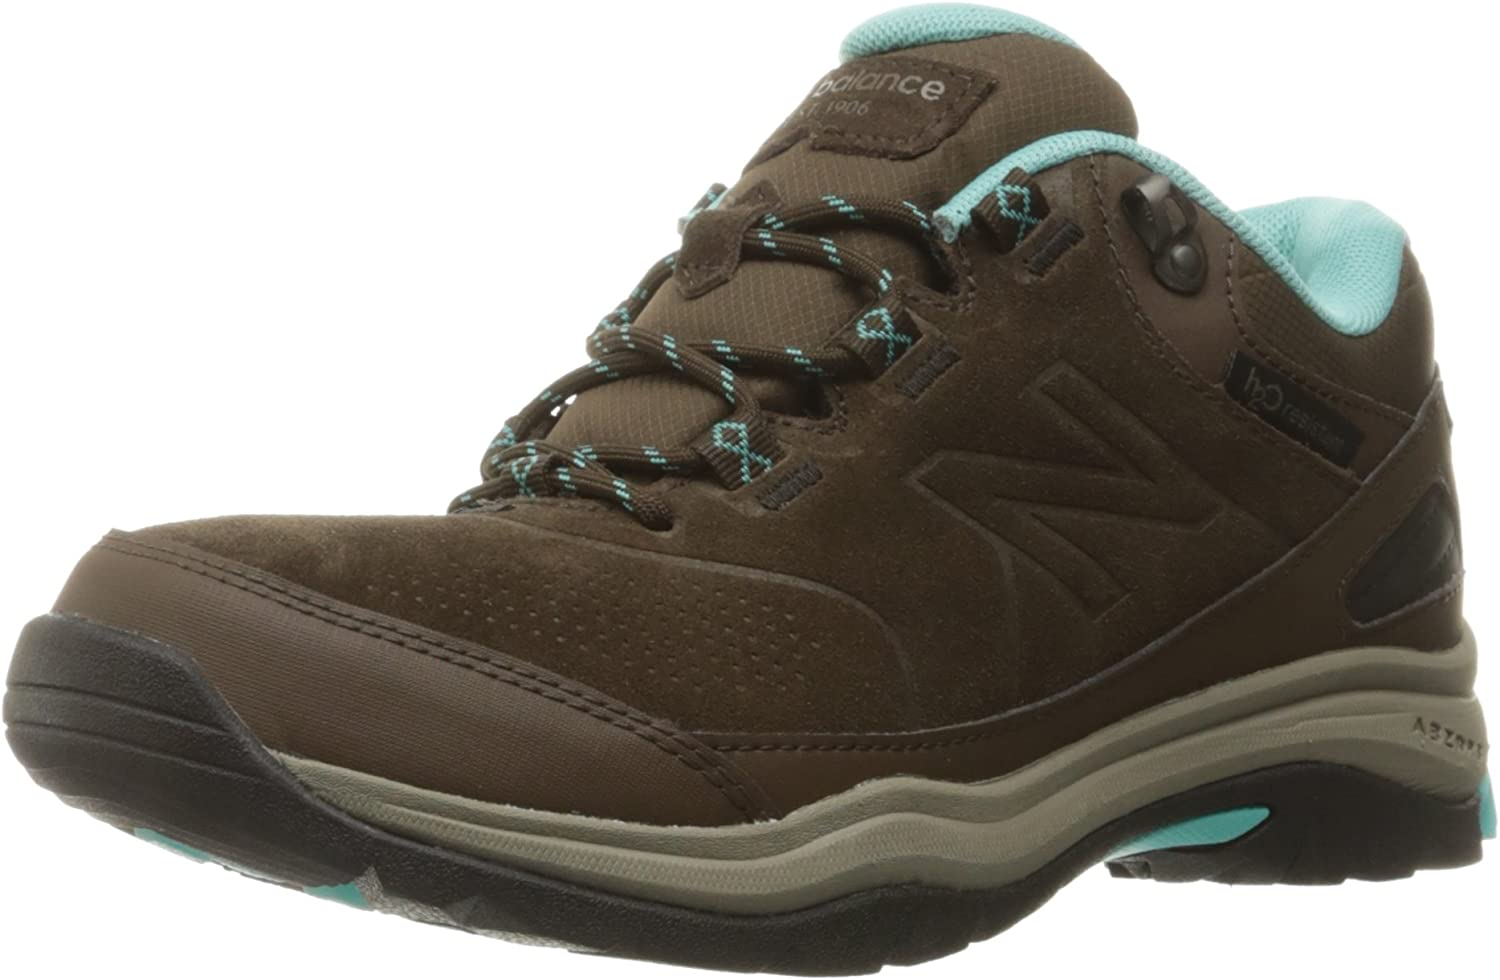 New Balance Women's 779v1 Trail Walking shoes Brown